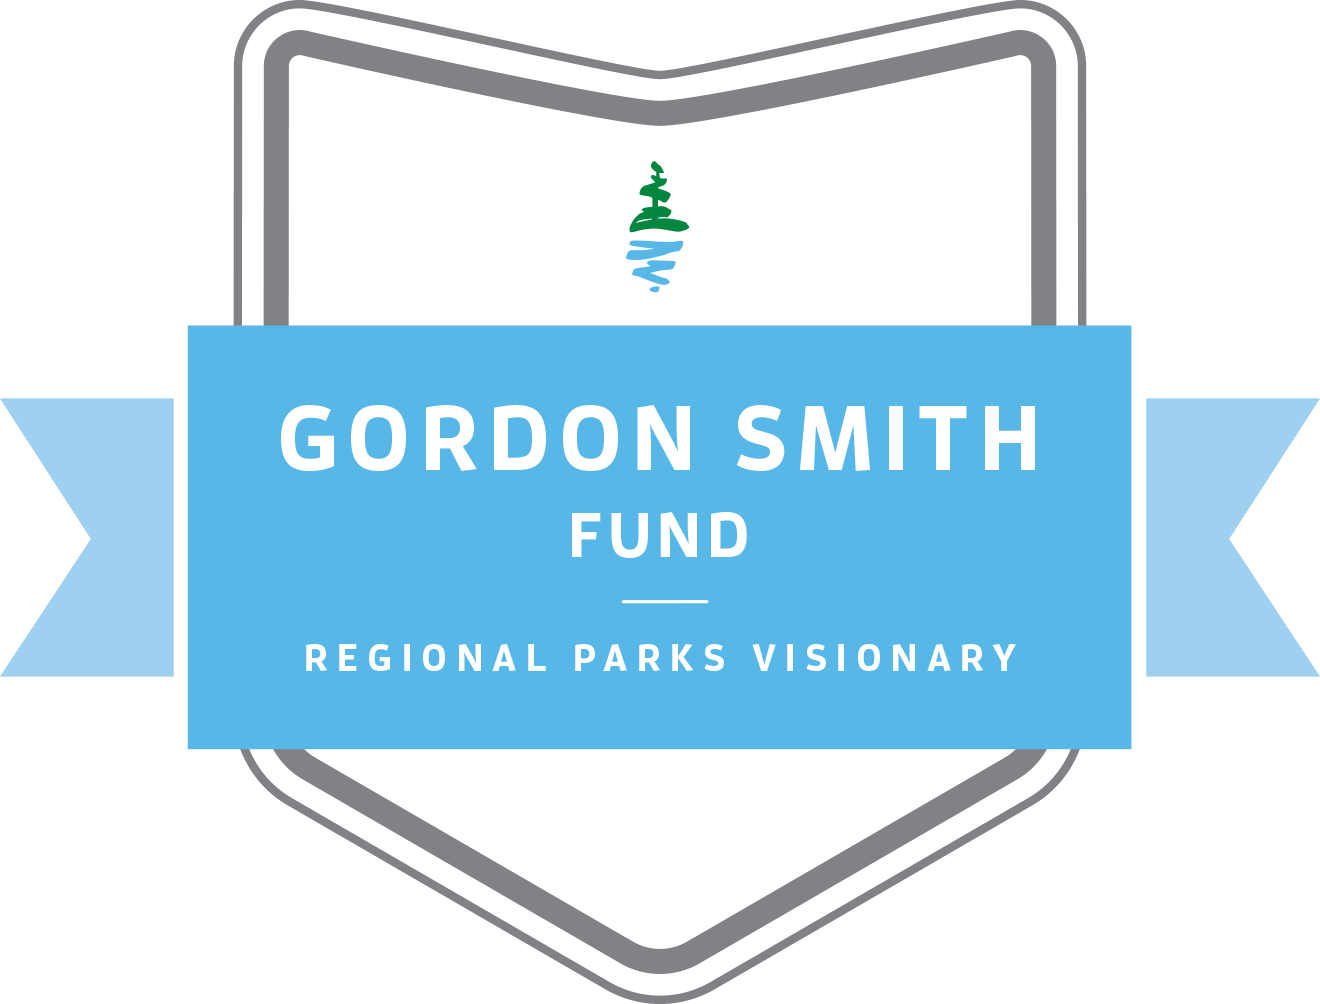 Gordon Smith Fund